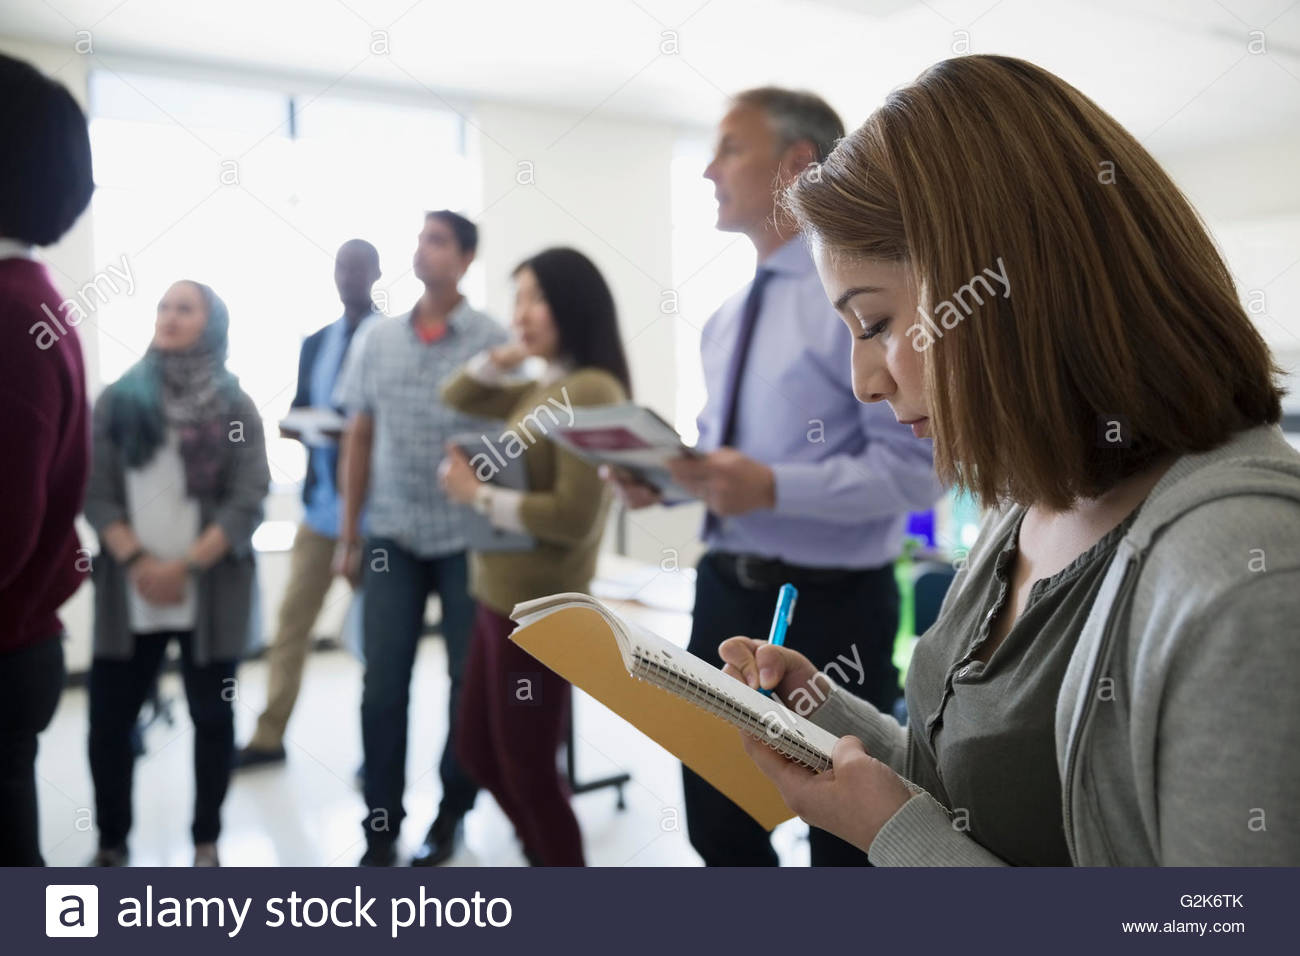 Esl Stockfotos & Esl Bilder - Alamy